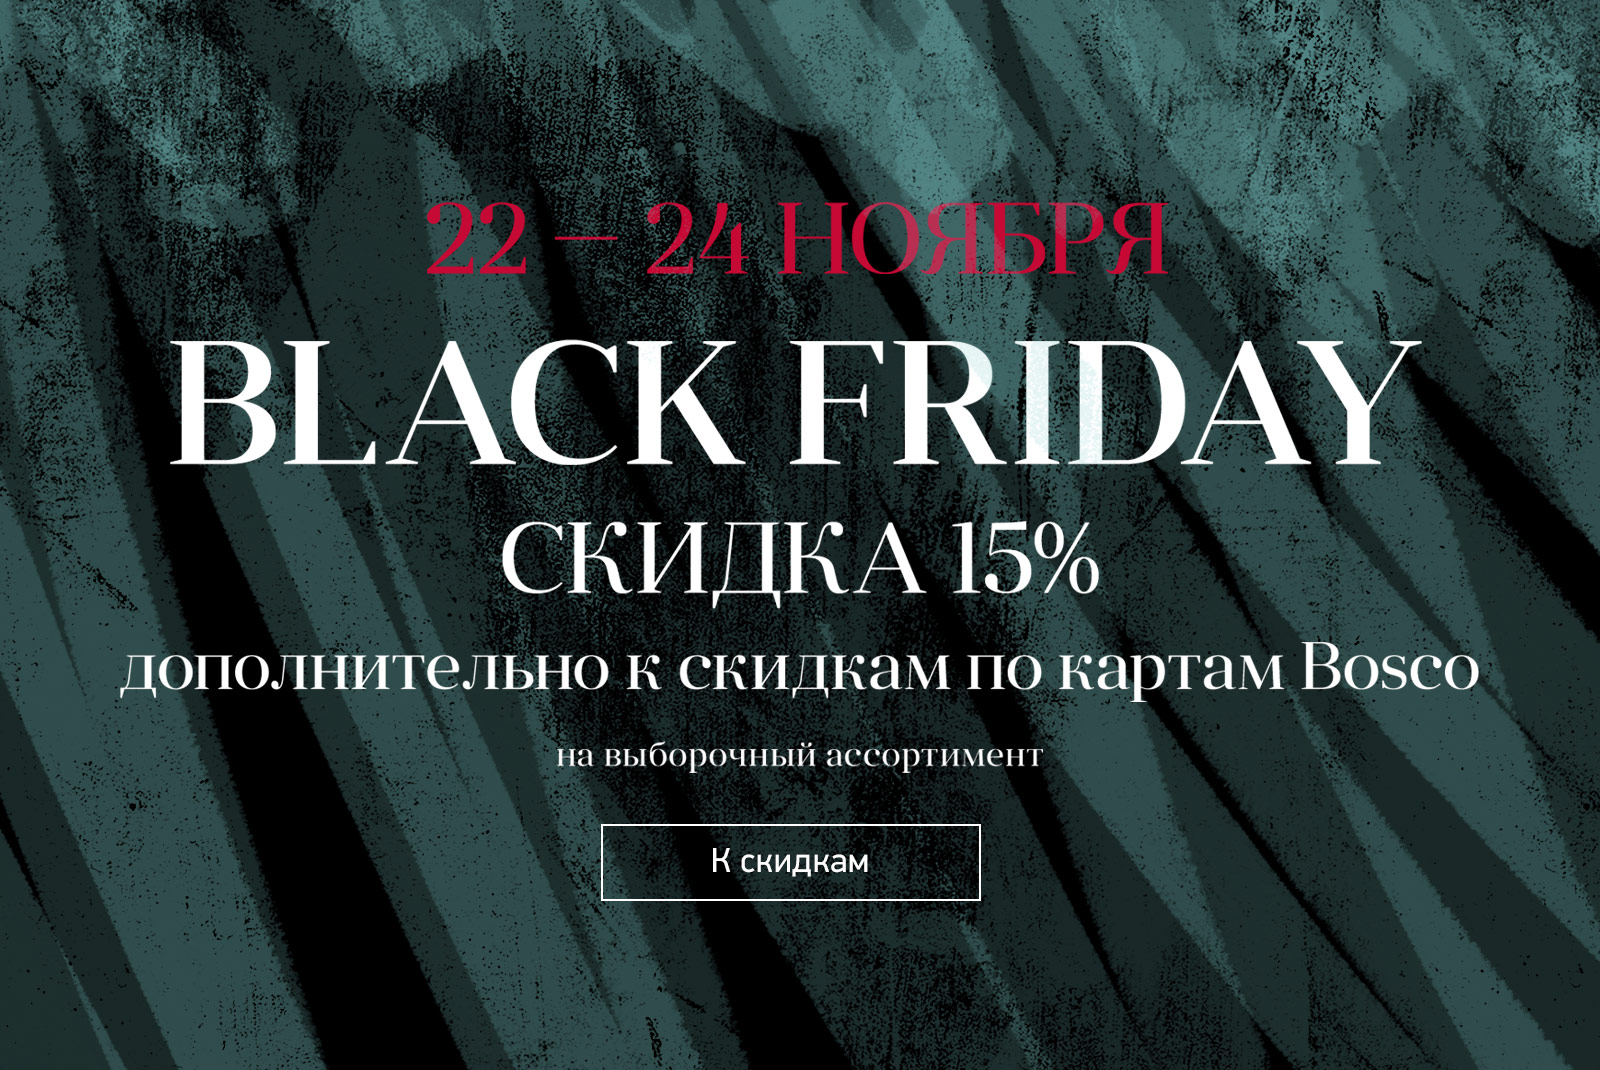 Black Friday в Bosco di Ciliegi!